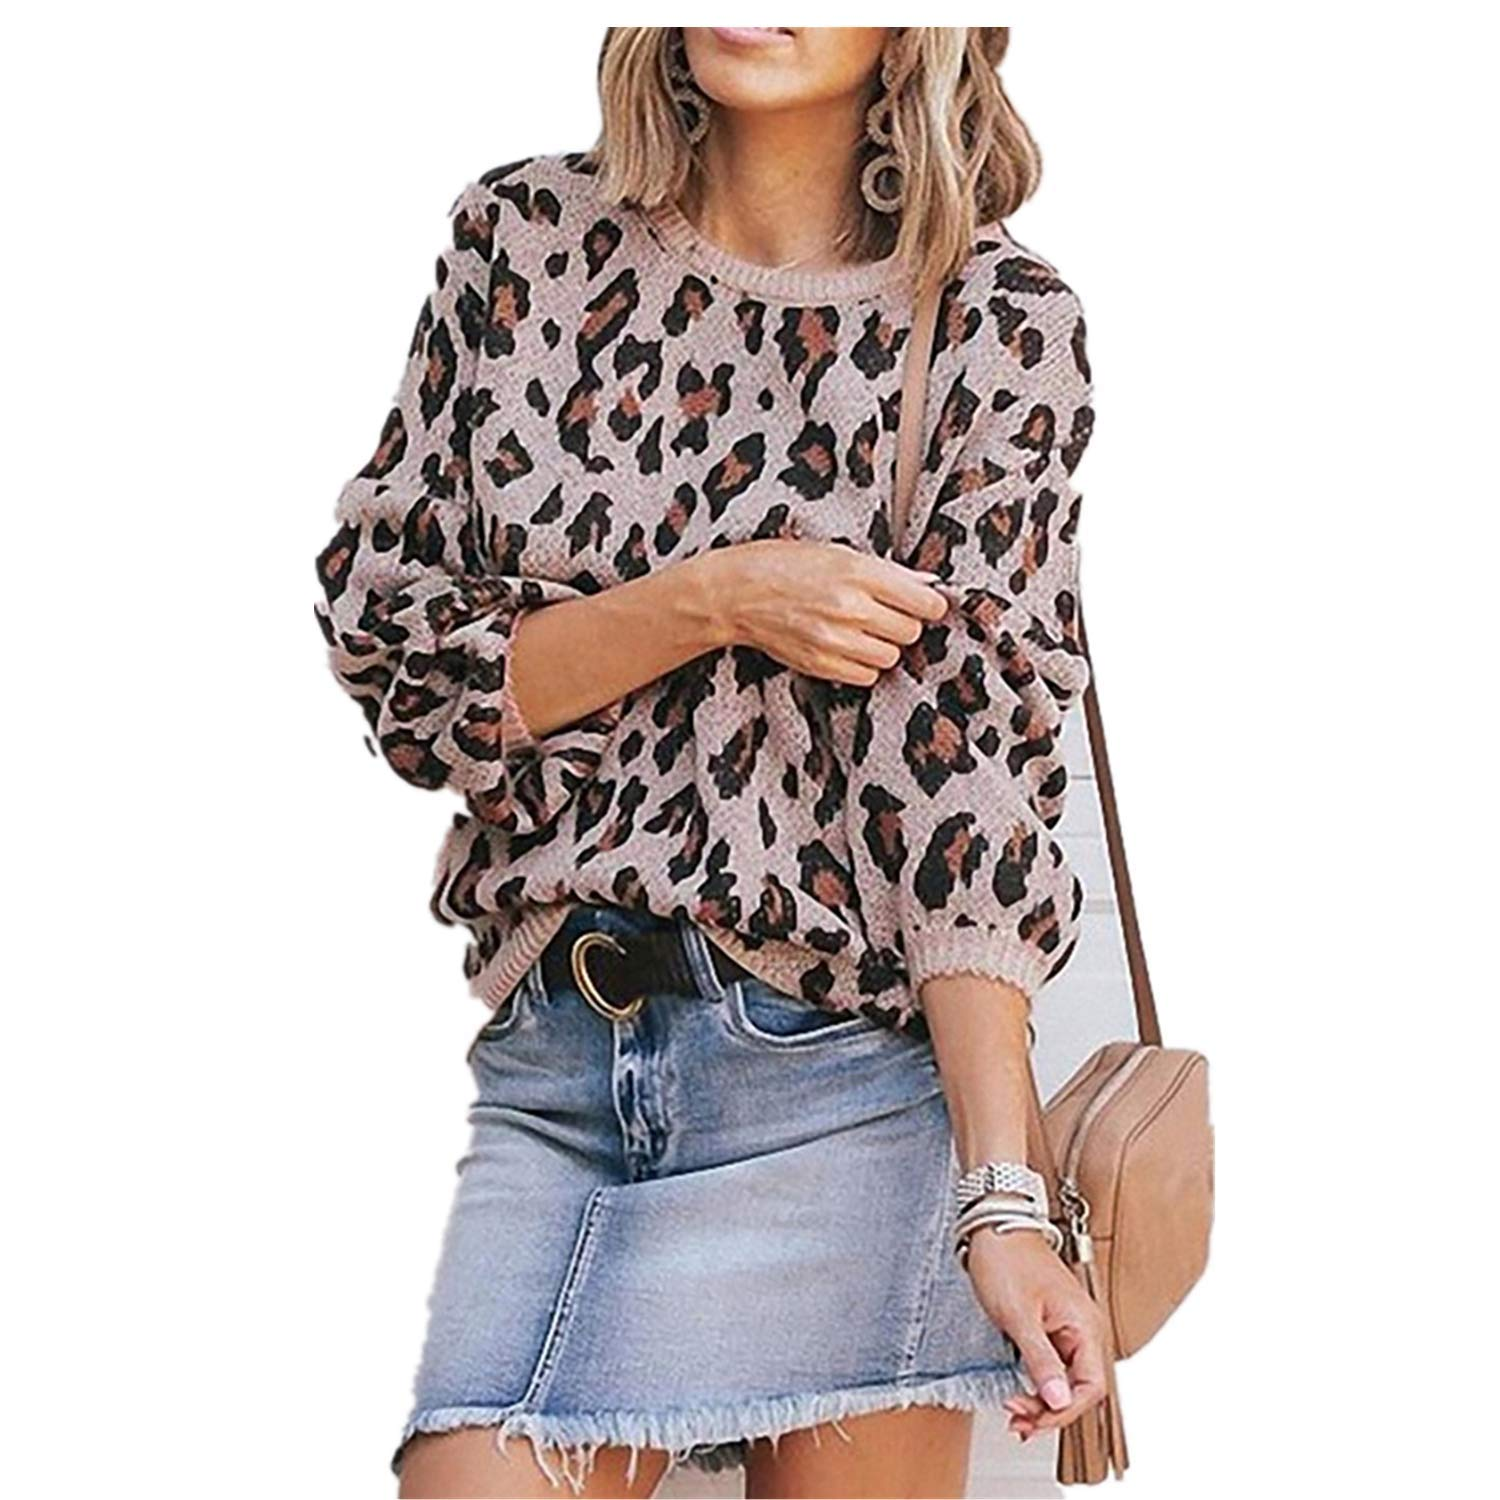 Womens Casual Leopard Printed Sweaters - Long Sleeve Sweatshirts Jumper Pullover Tops Knits Loose Blouse Pink by HiSunlyan